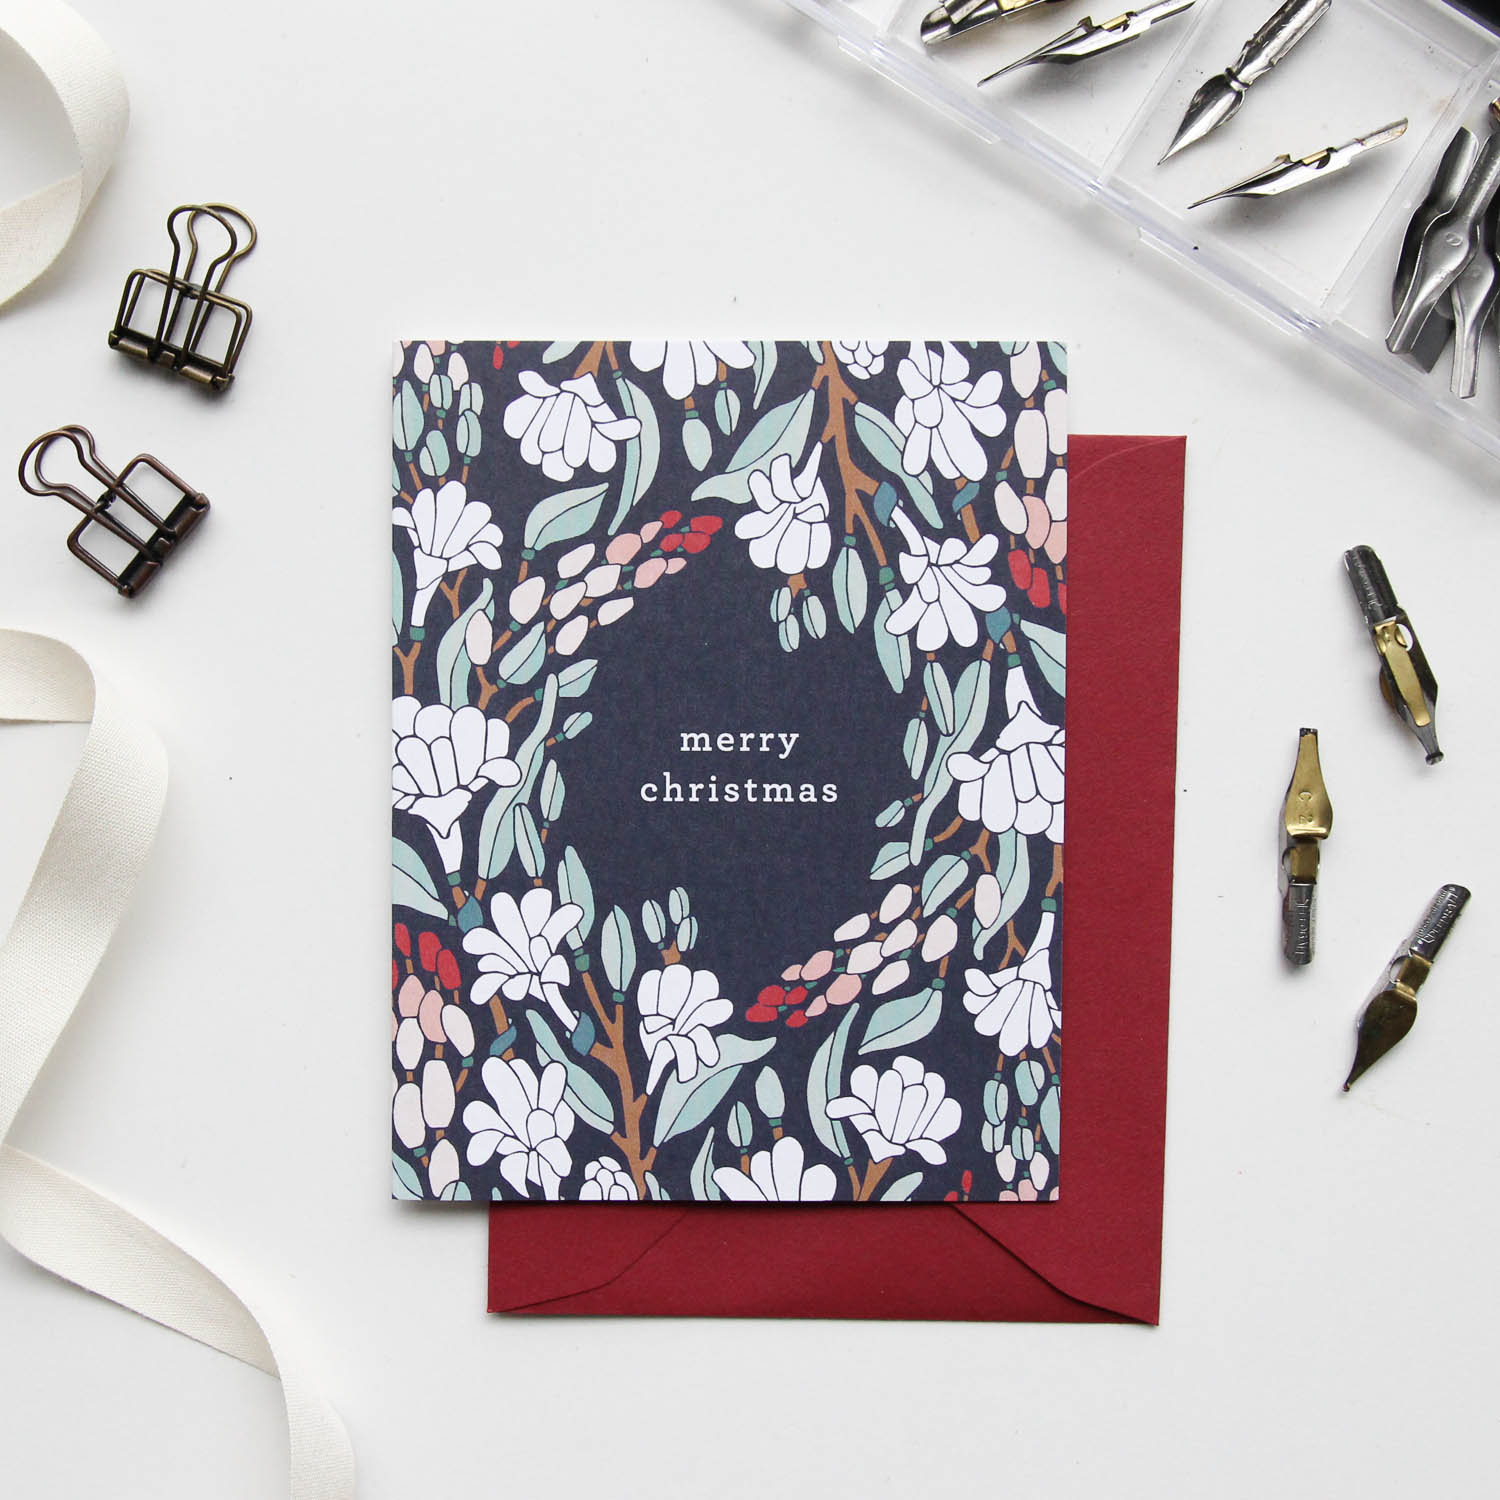 Merry Christmas Card - Christmas Cards 2018, Holiday Cards | Illustrated Floral Christmas Cards by Root & Branch Paper Co.